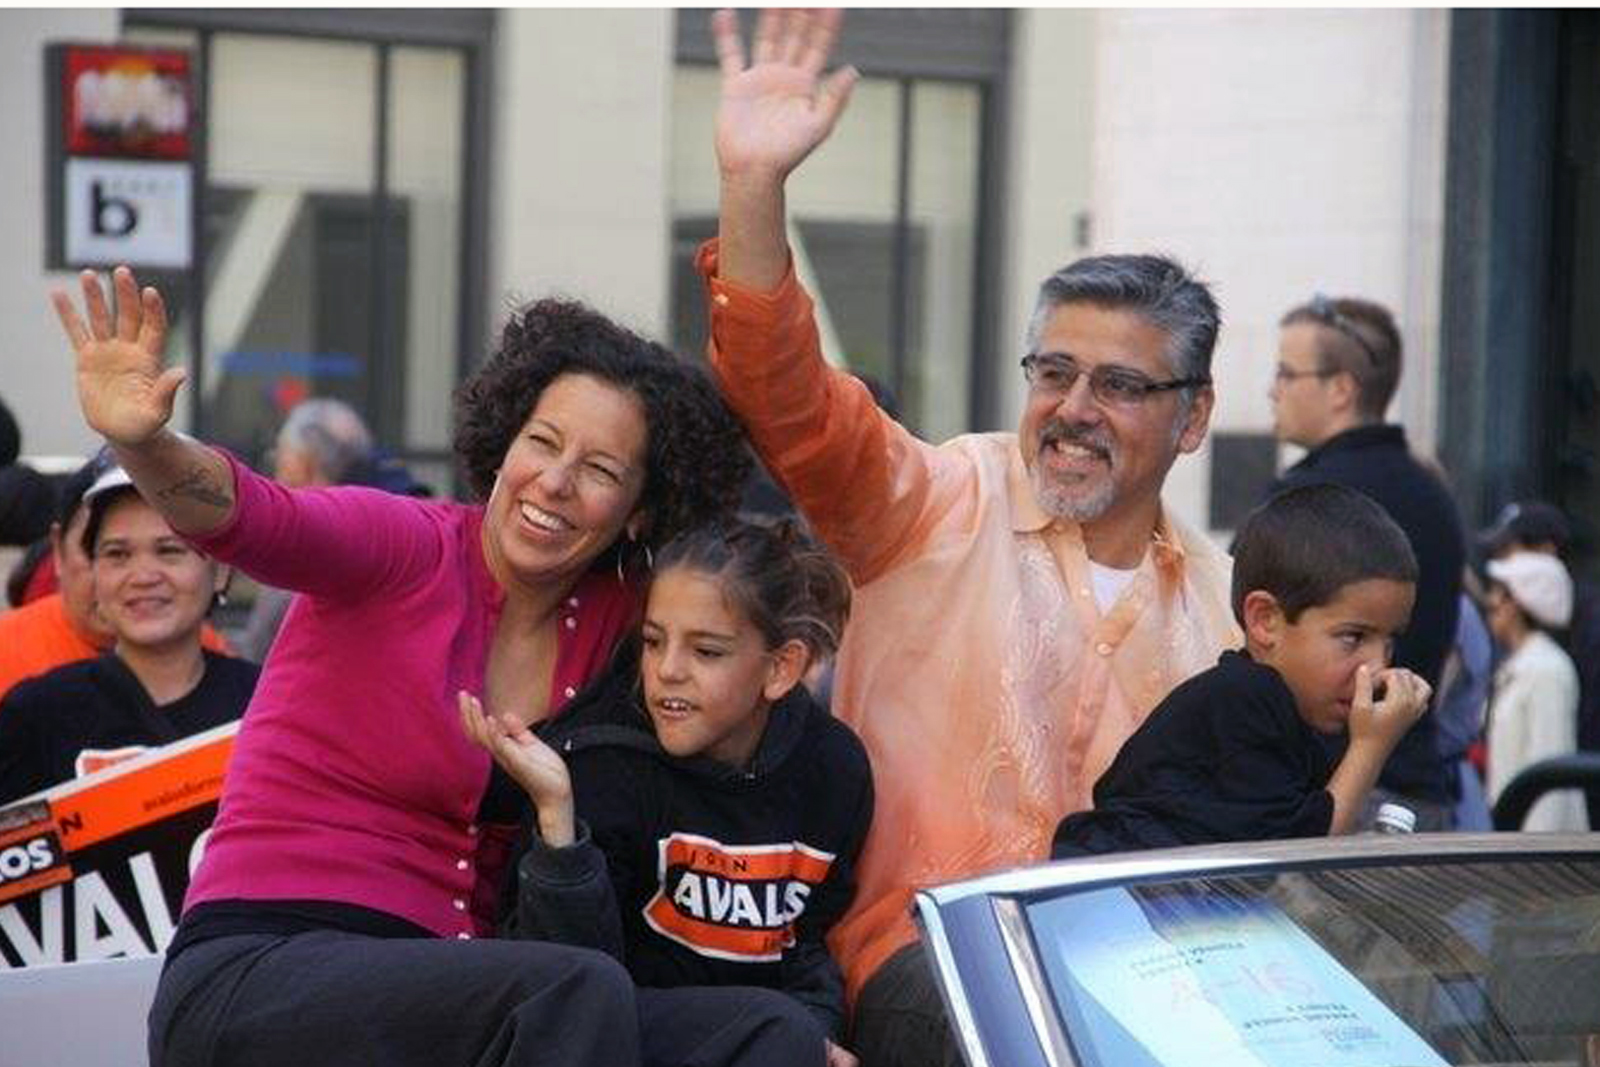 Avalos Stands with Protesters Occupying San Francisco